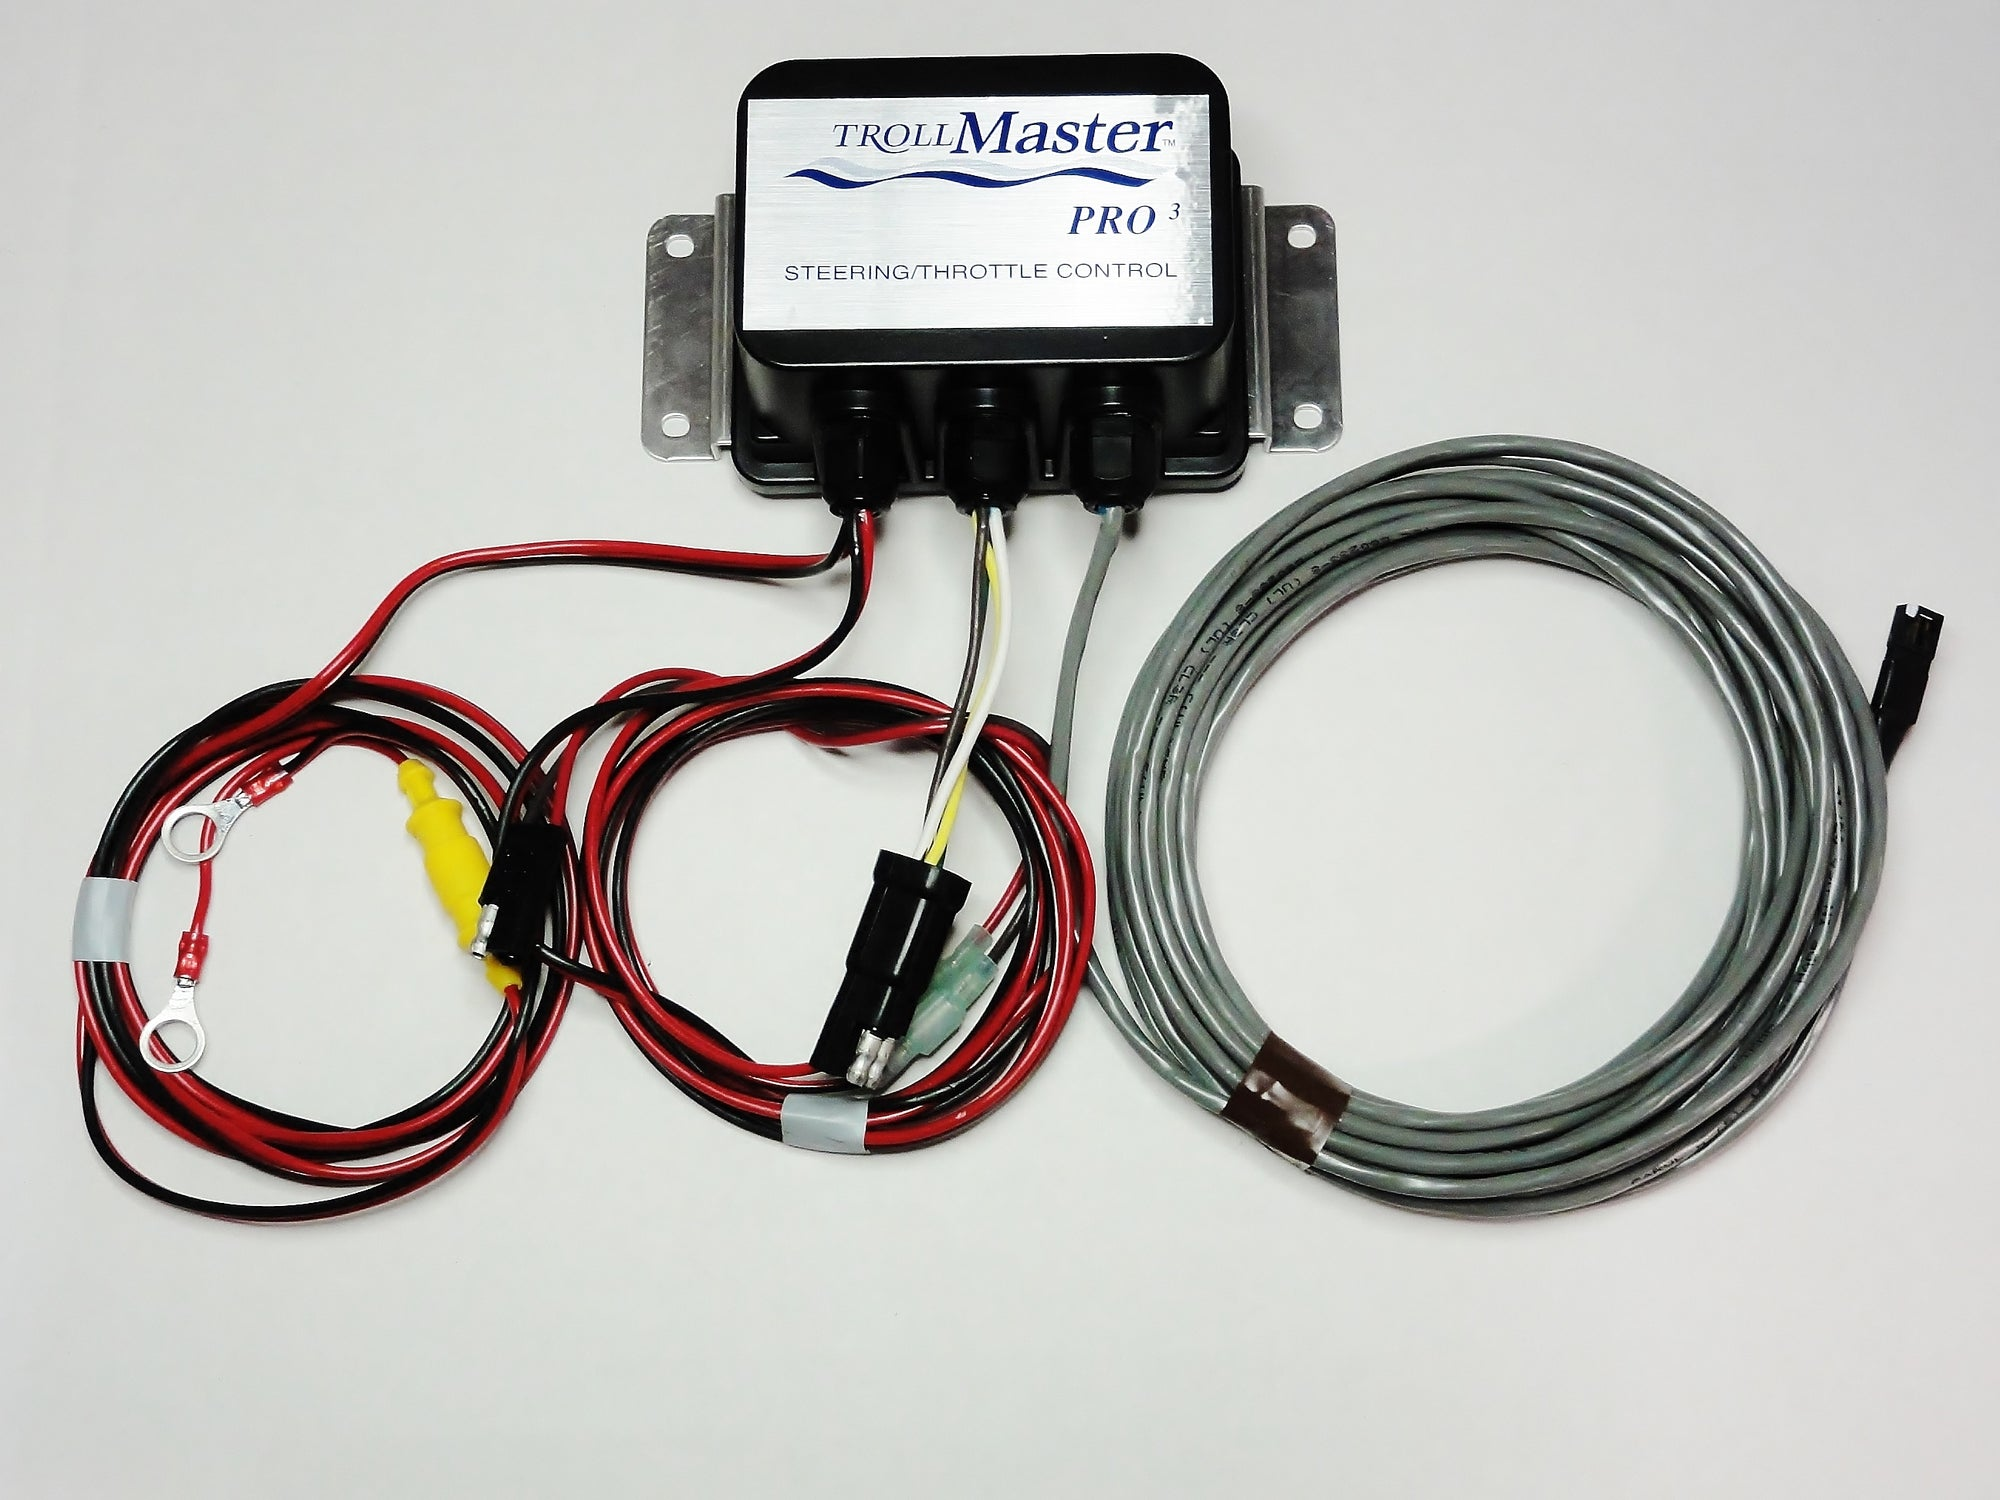 TrollMaster PRO3 Steering Module - shop.cmpgroup.net